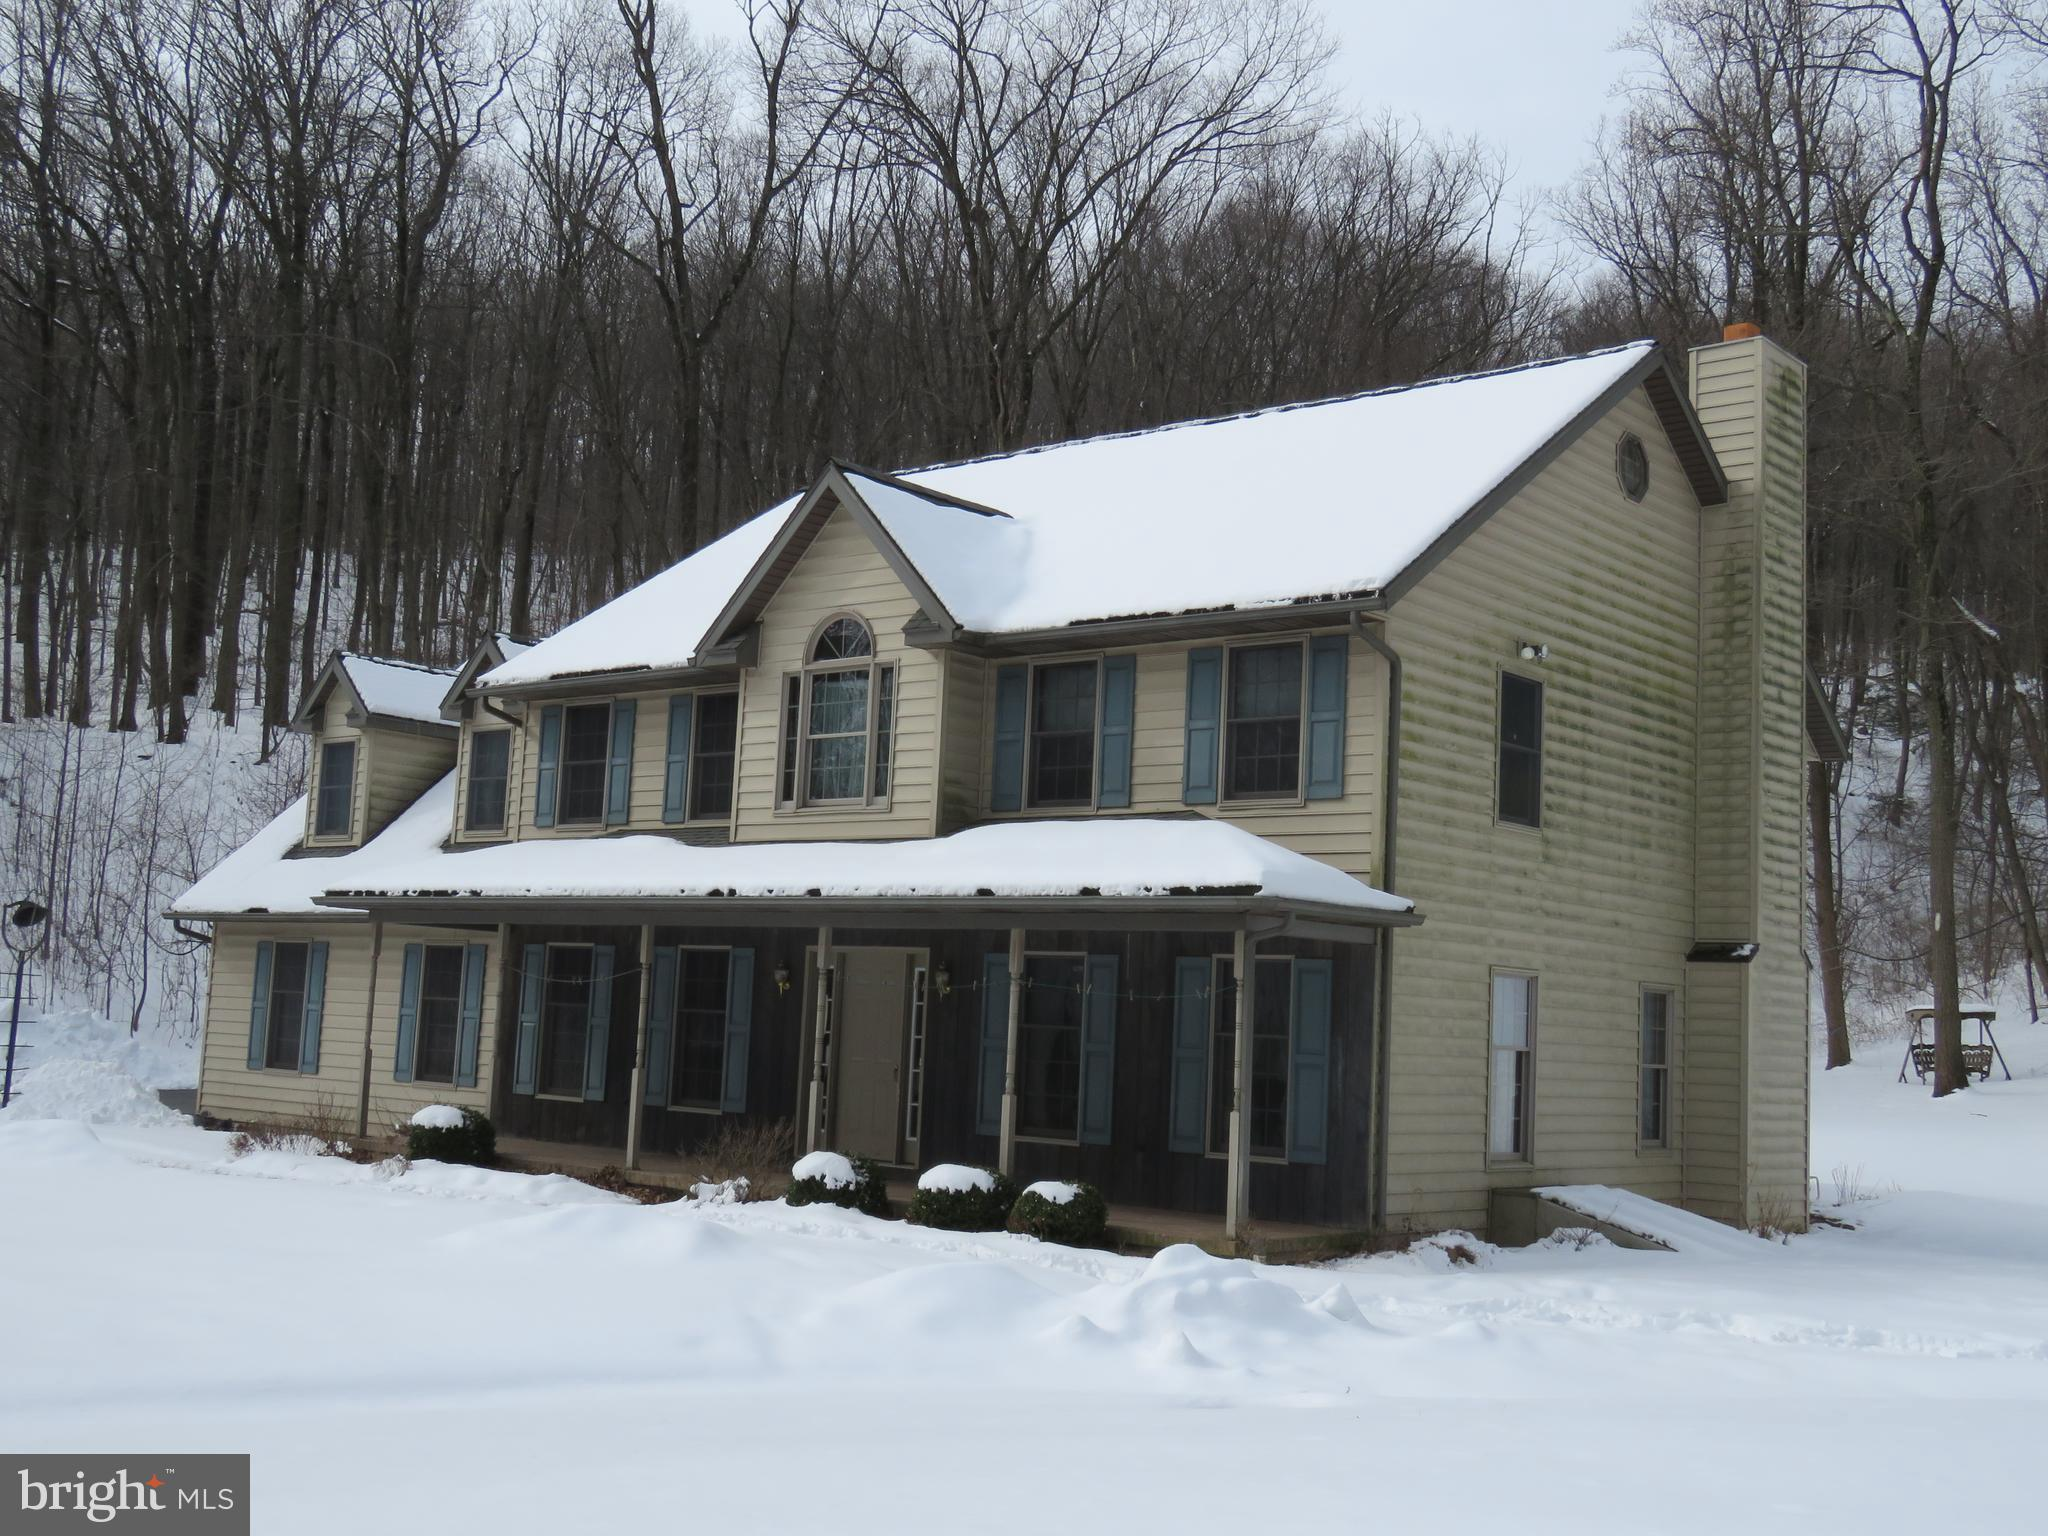 1667 LITTLE MOUNTAIN ROAD, BETHEL, PA 19507